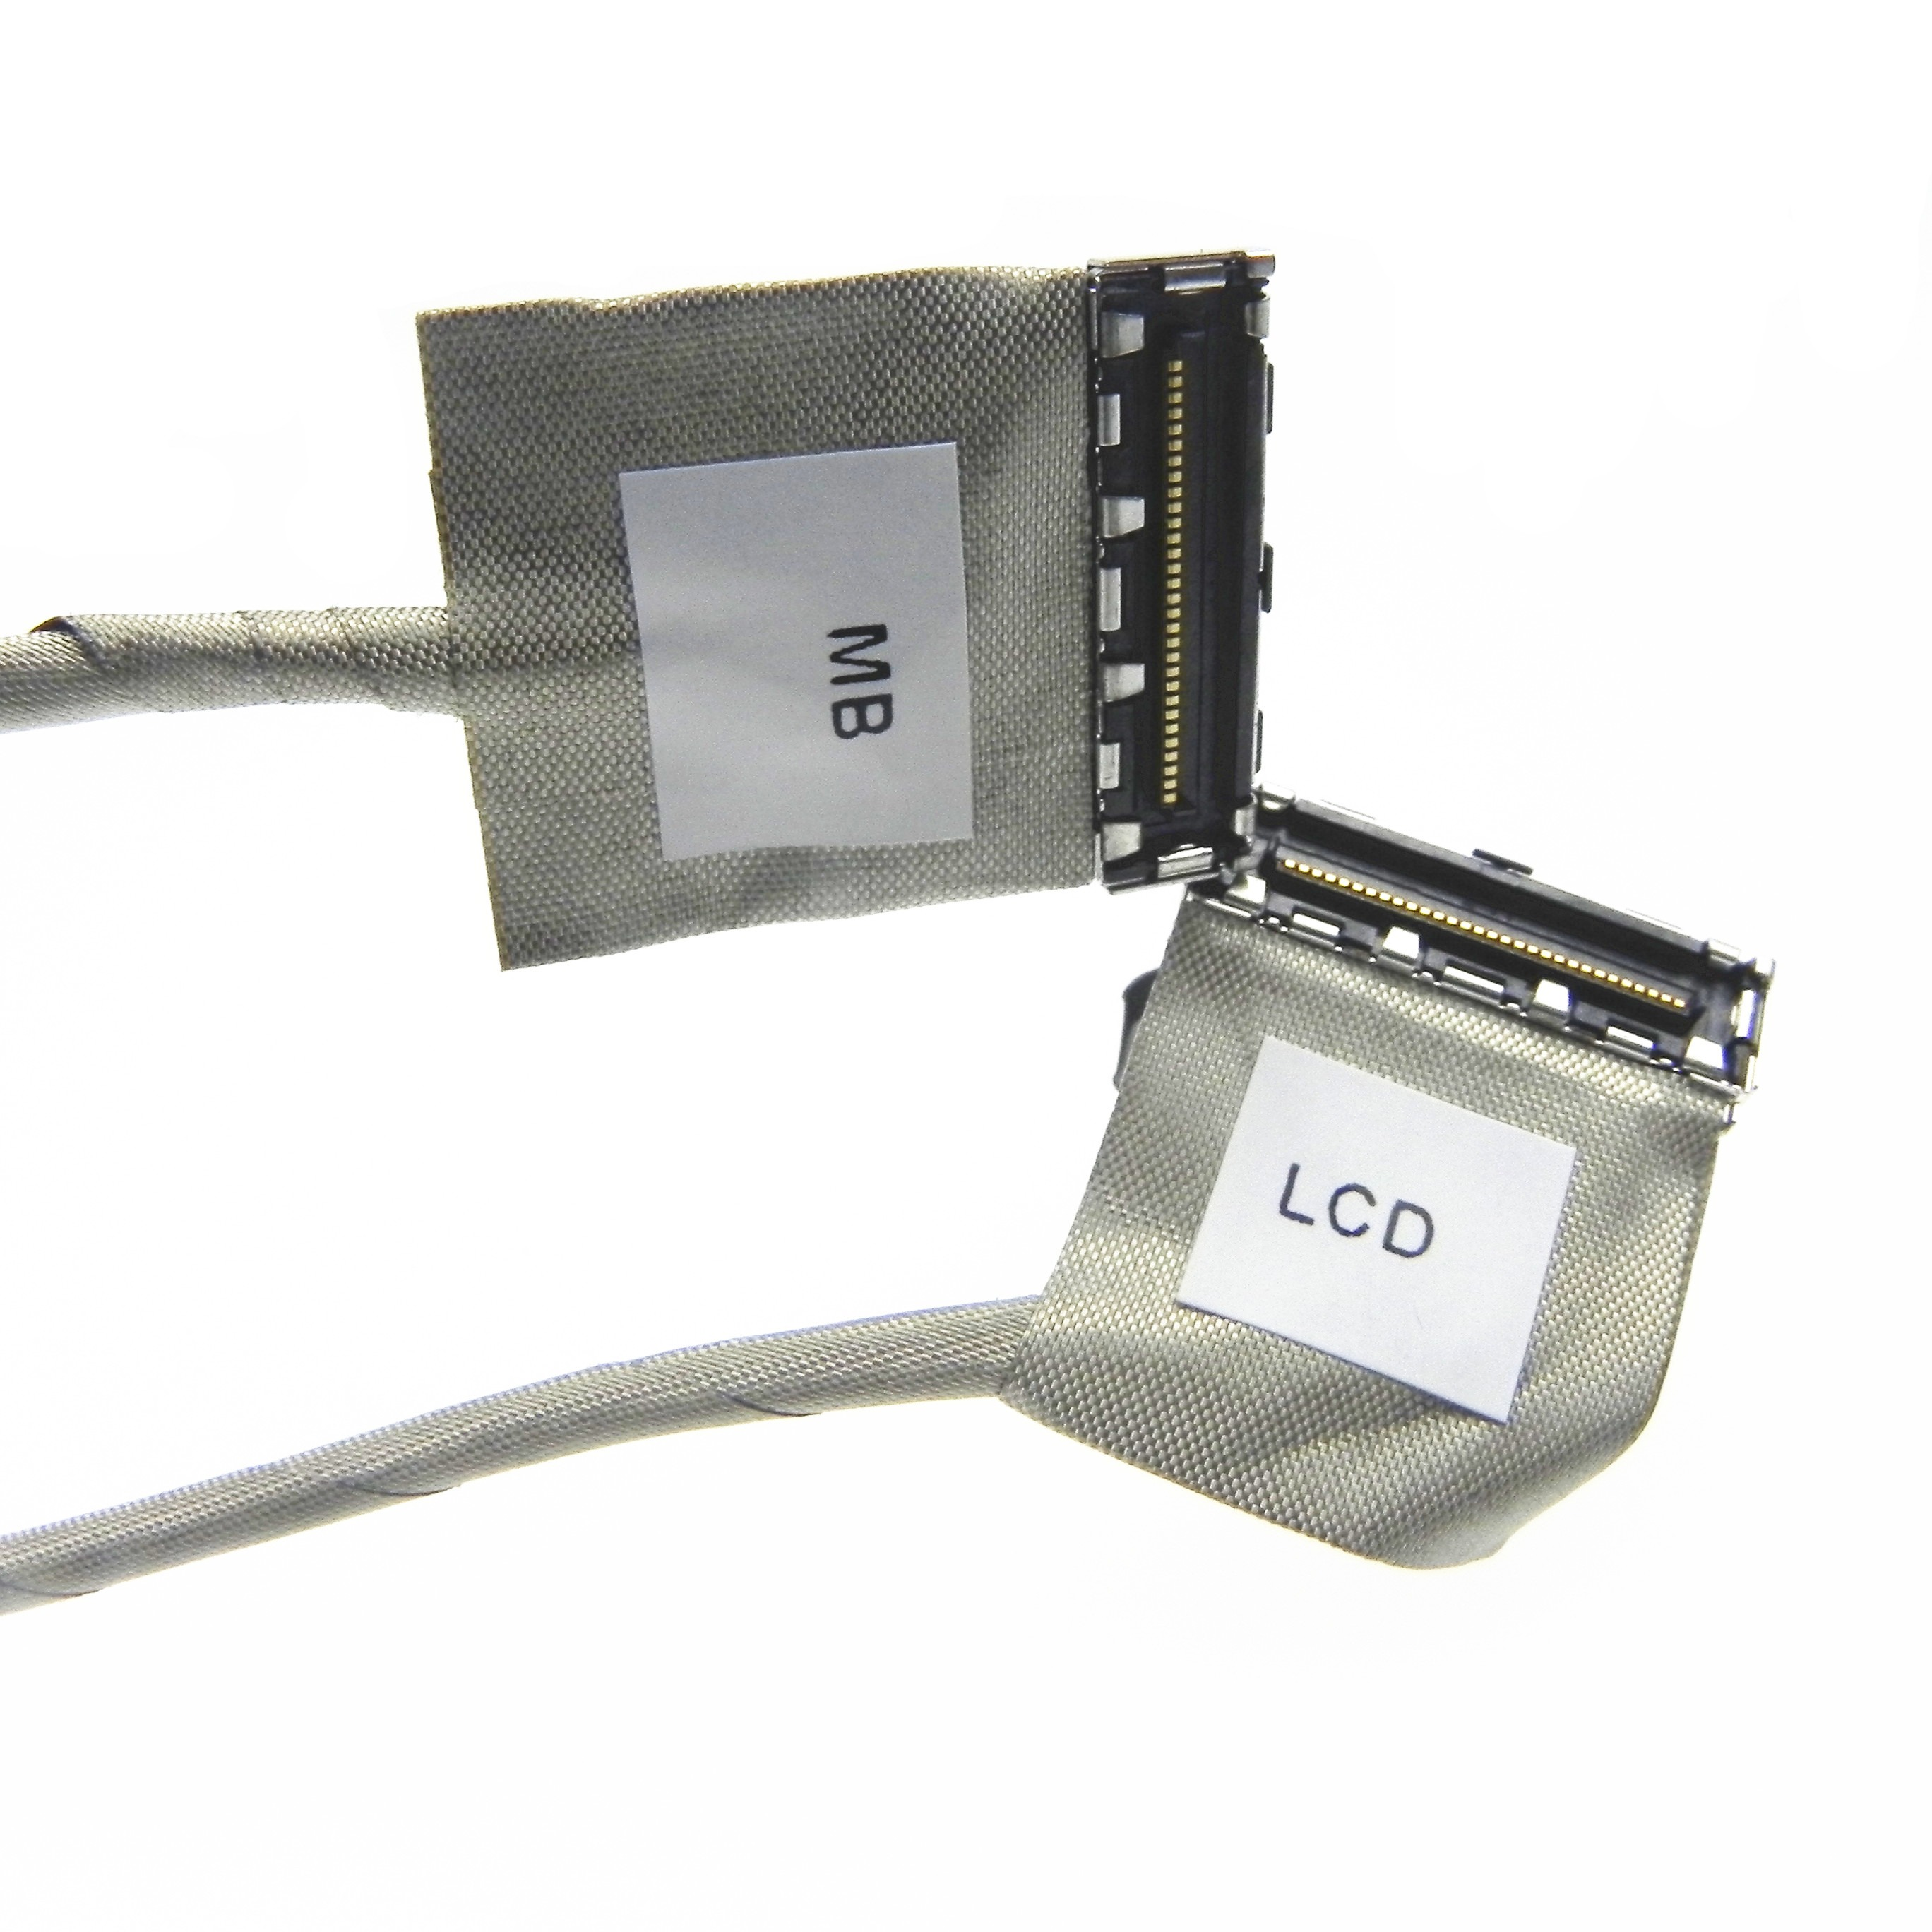 Custom LCD cable assembly